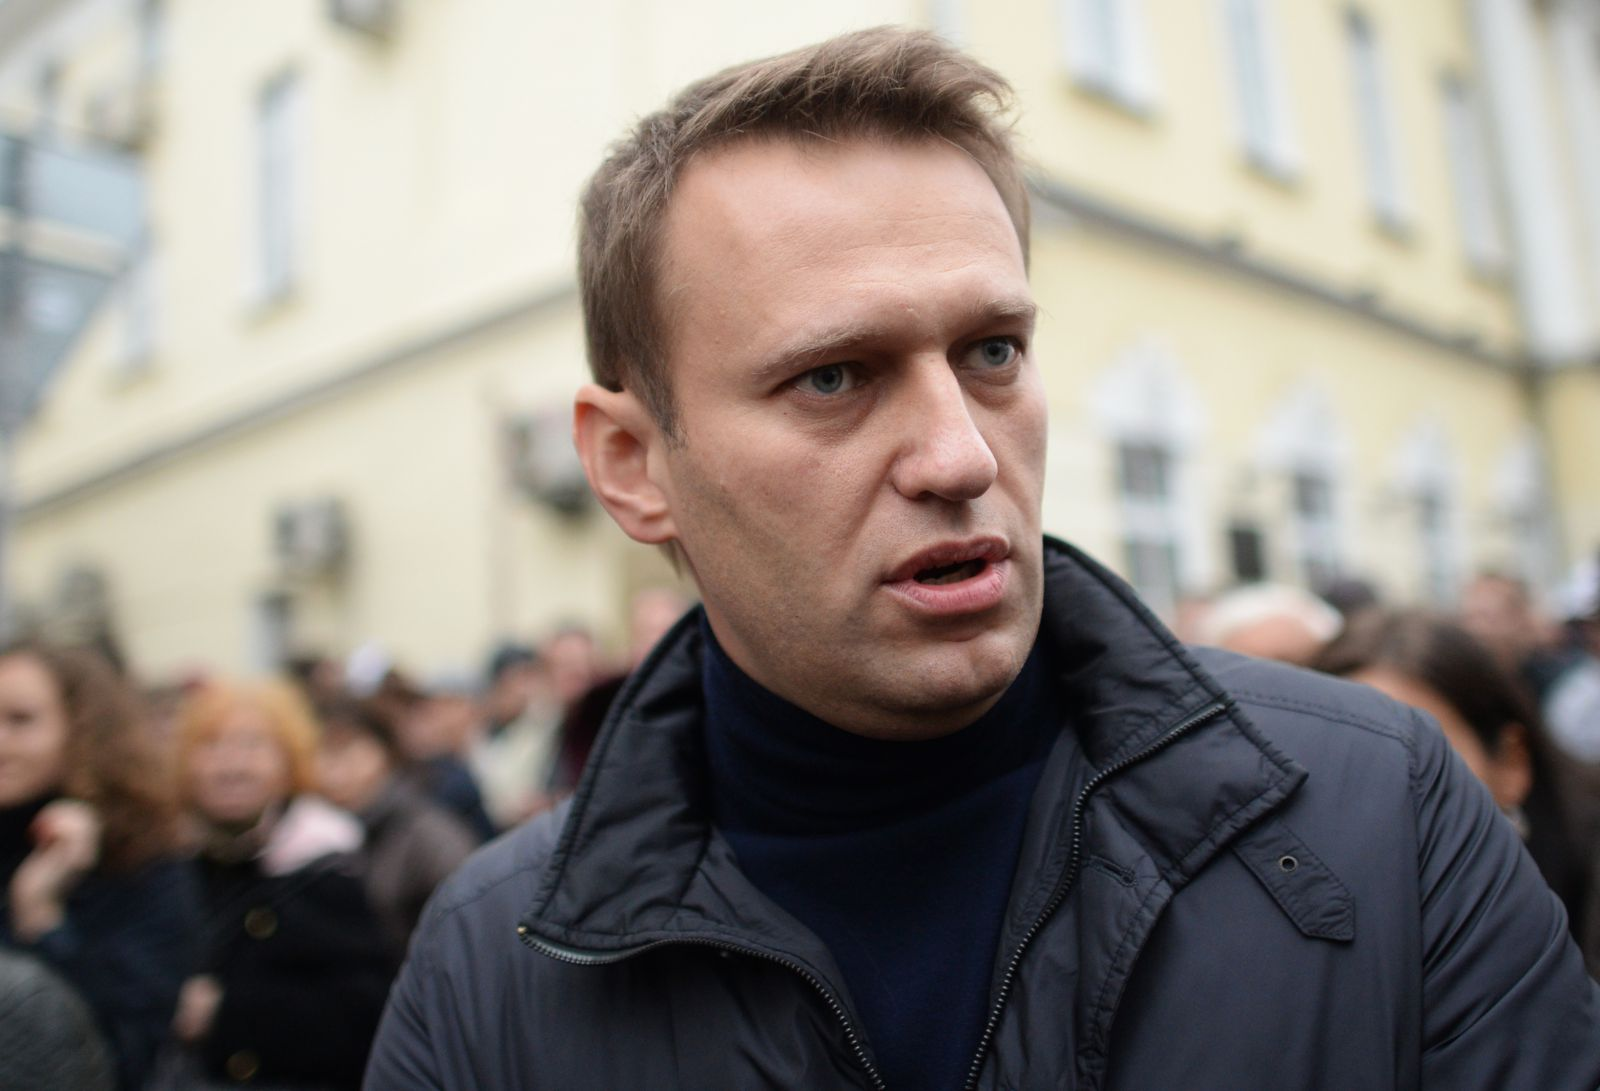 Navalny was detained at the airport in Russia